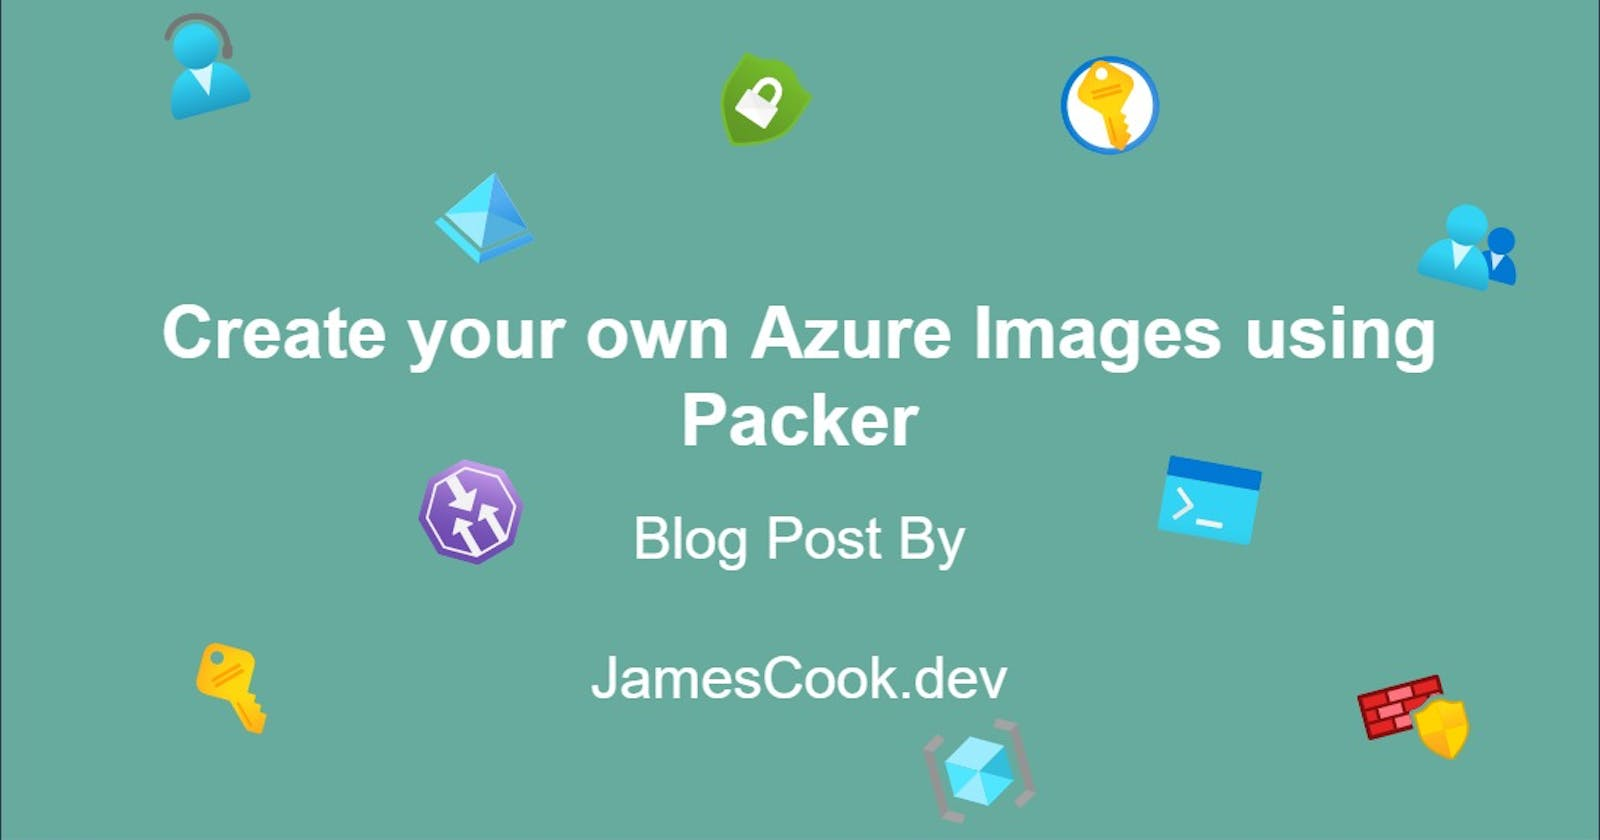 Create your own Azure Images using Packer